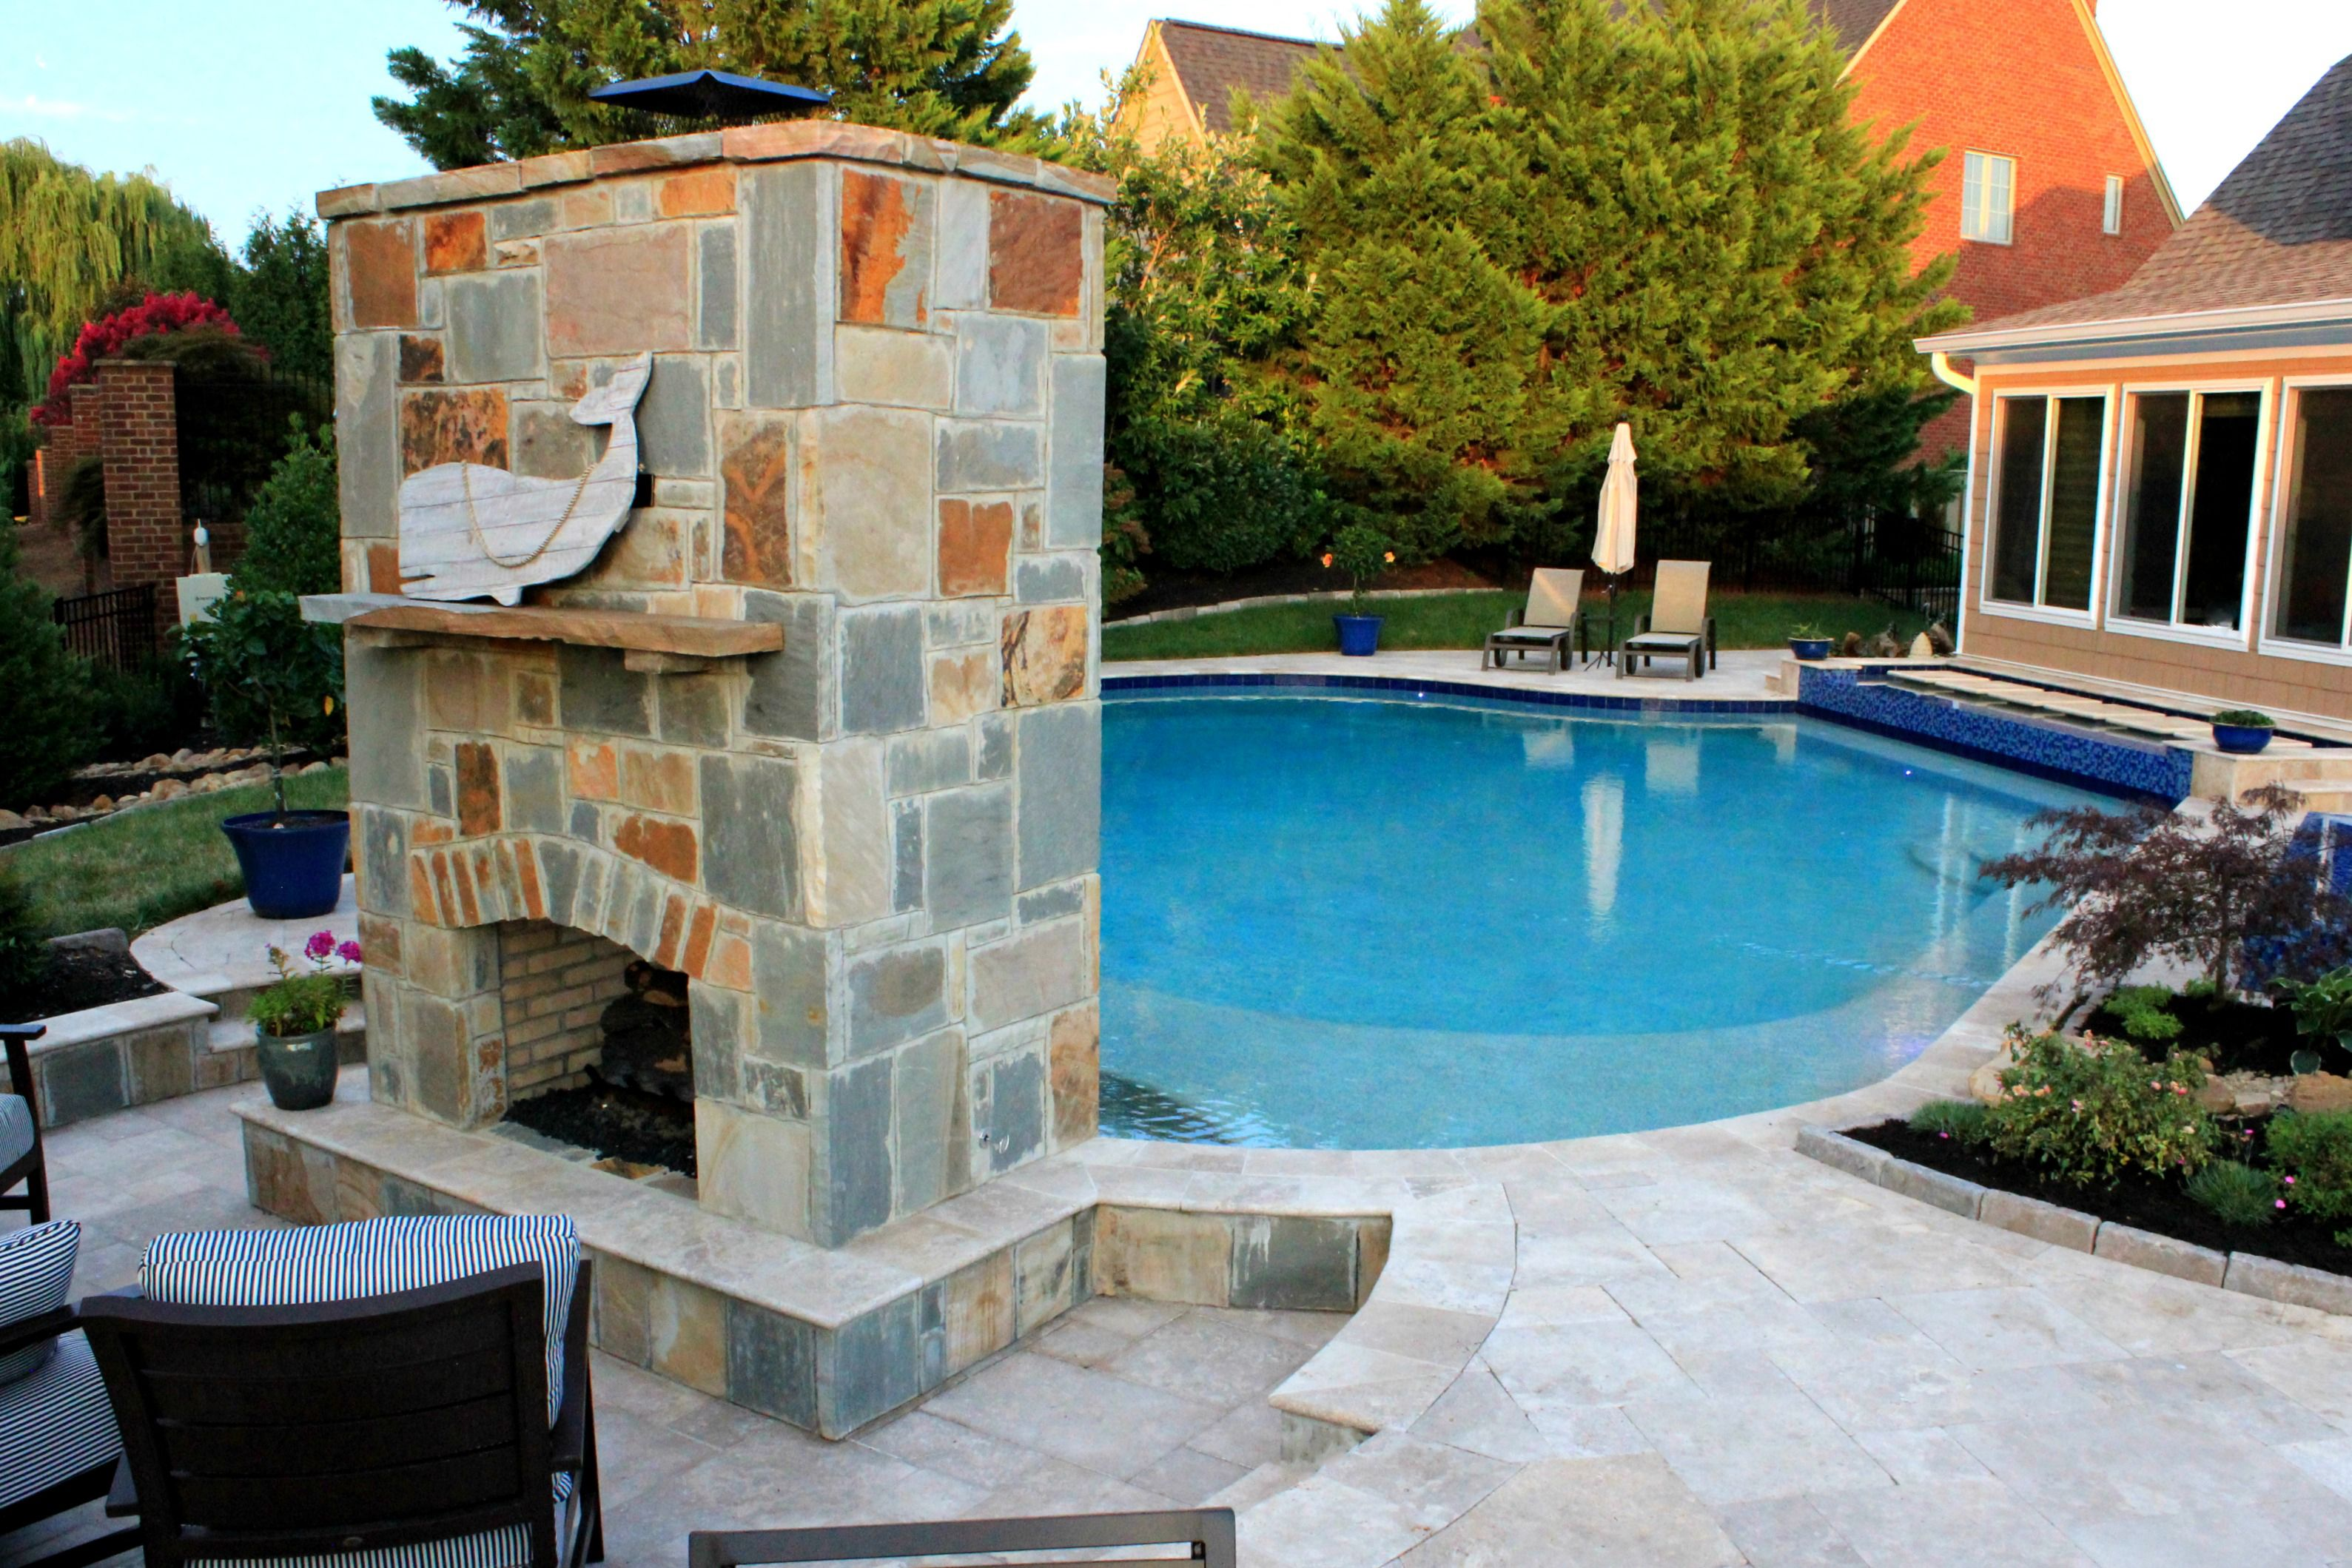 Complex Custom Inground Pool With Fireplace, Tanning Ledges, Inground Spa,